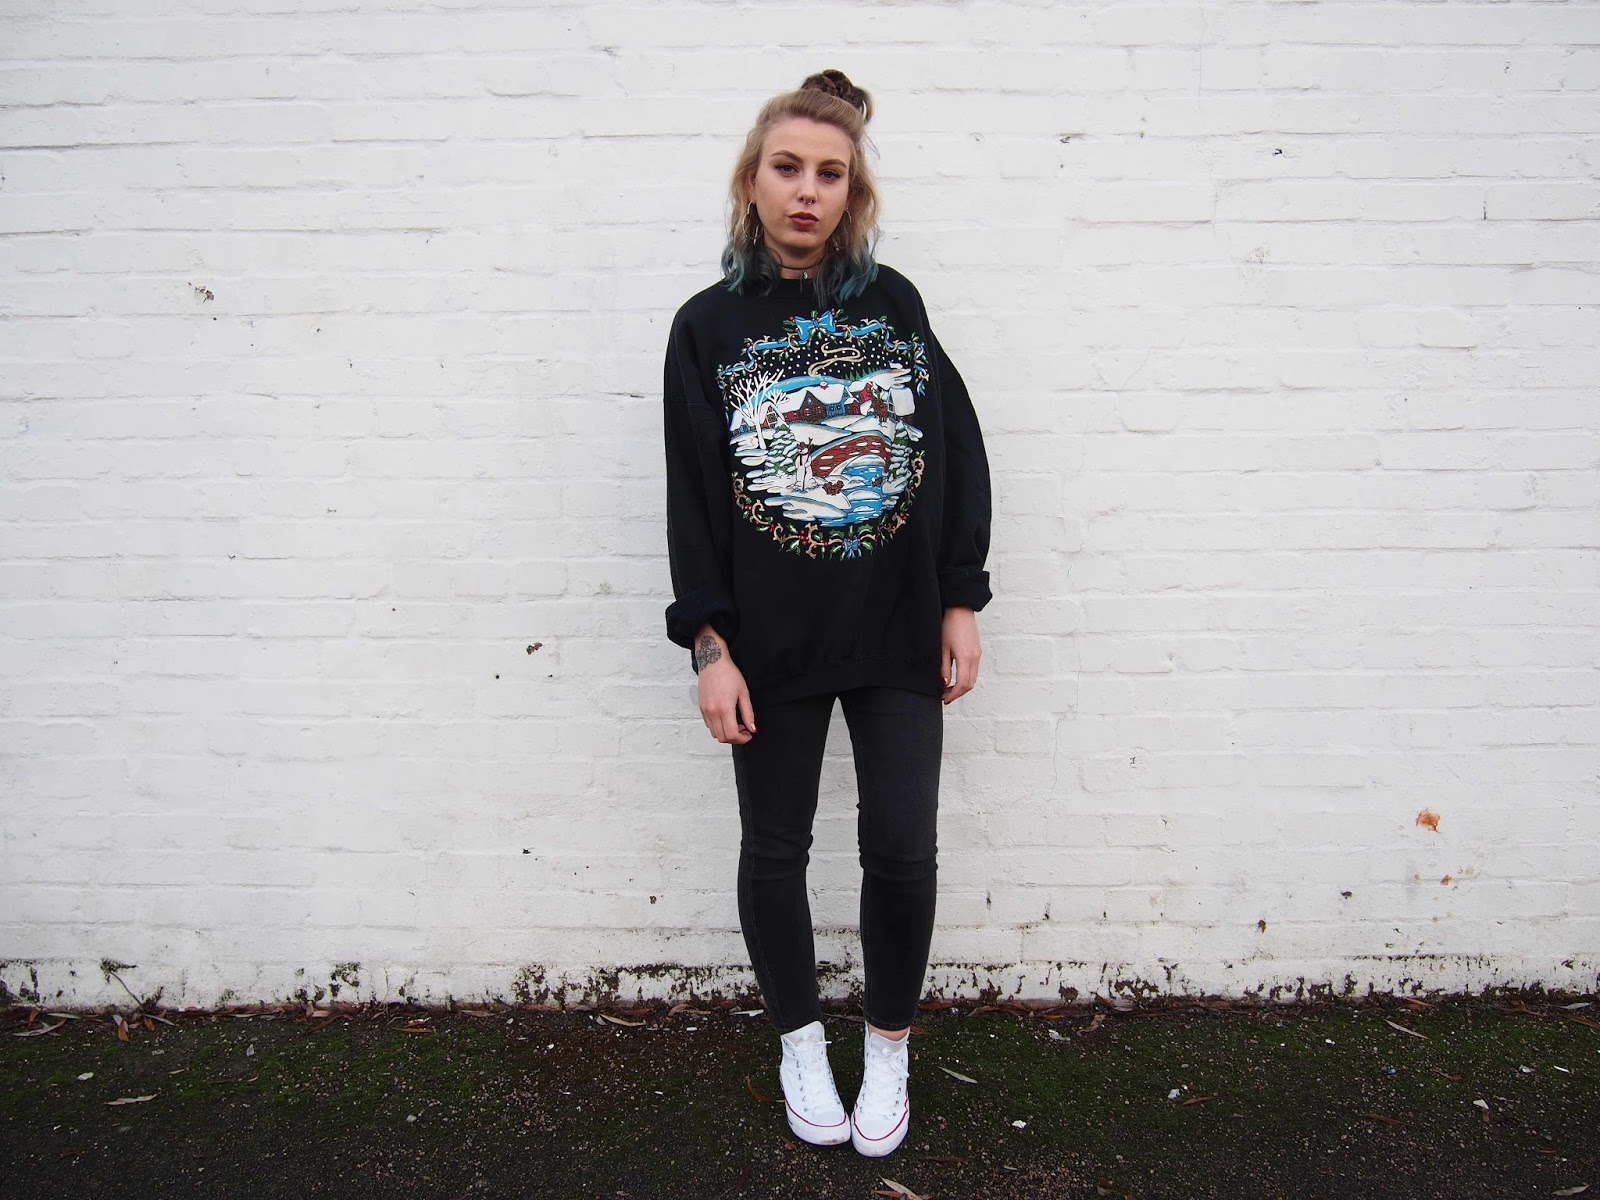 vintage oversized christmas jumper, 90's grunge style, alternative tumblr style fashion, all white high top converse, tumblr alternative girl, beyond retro jumper